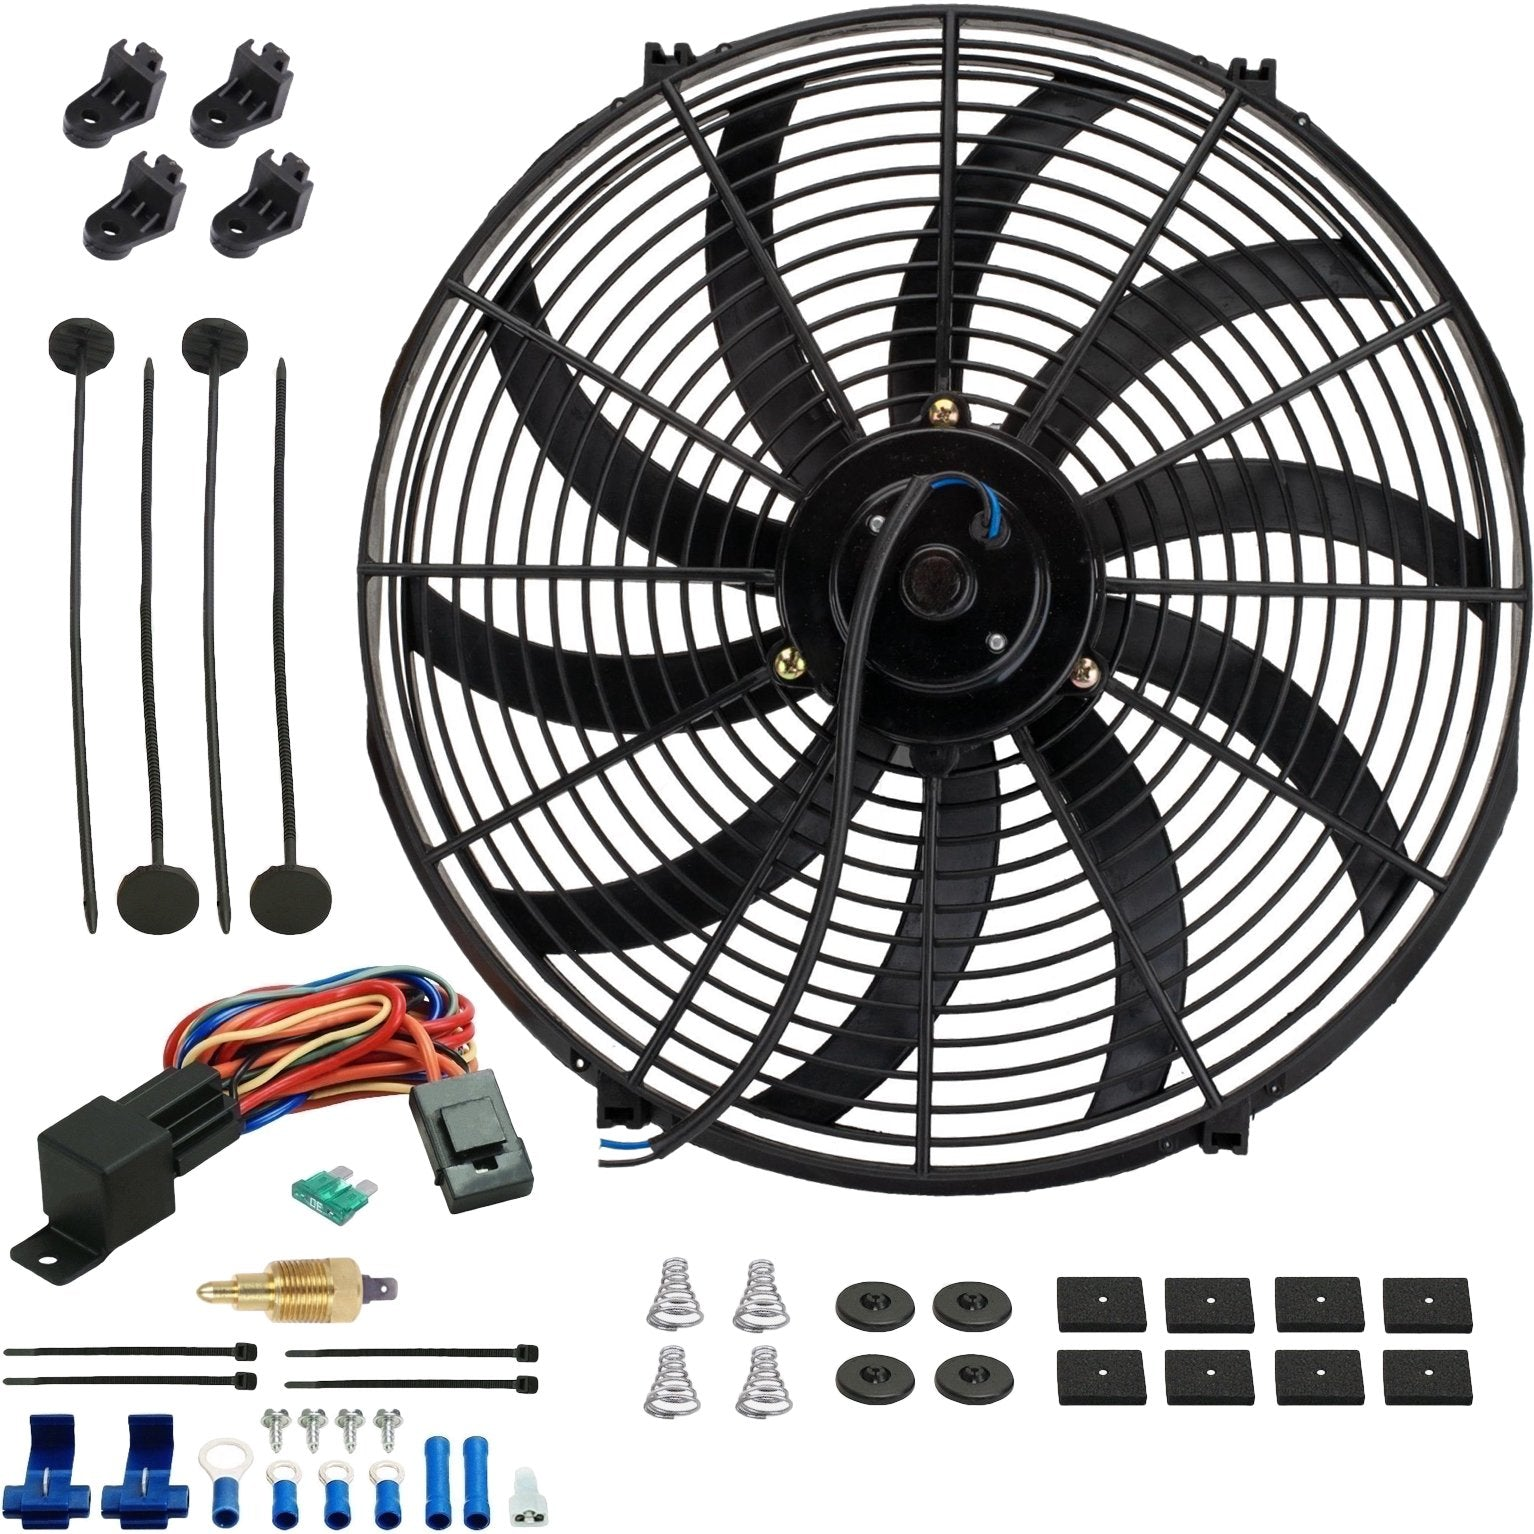 "16"" Inch 130w Motor Electric Radiator Cooling Fan NPT Ground Thermostat Temperature Switch Kit-Single Electric Fans-American Volt-1/8"" NPT-140'F On - 125'F Off-American Volt"